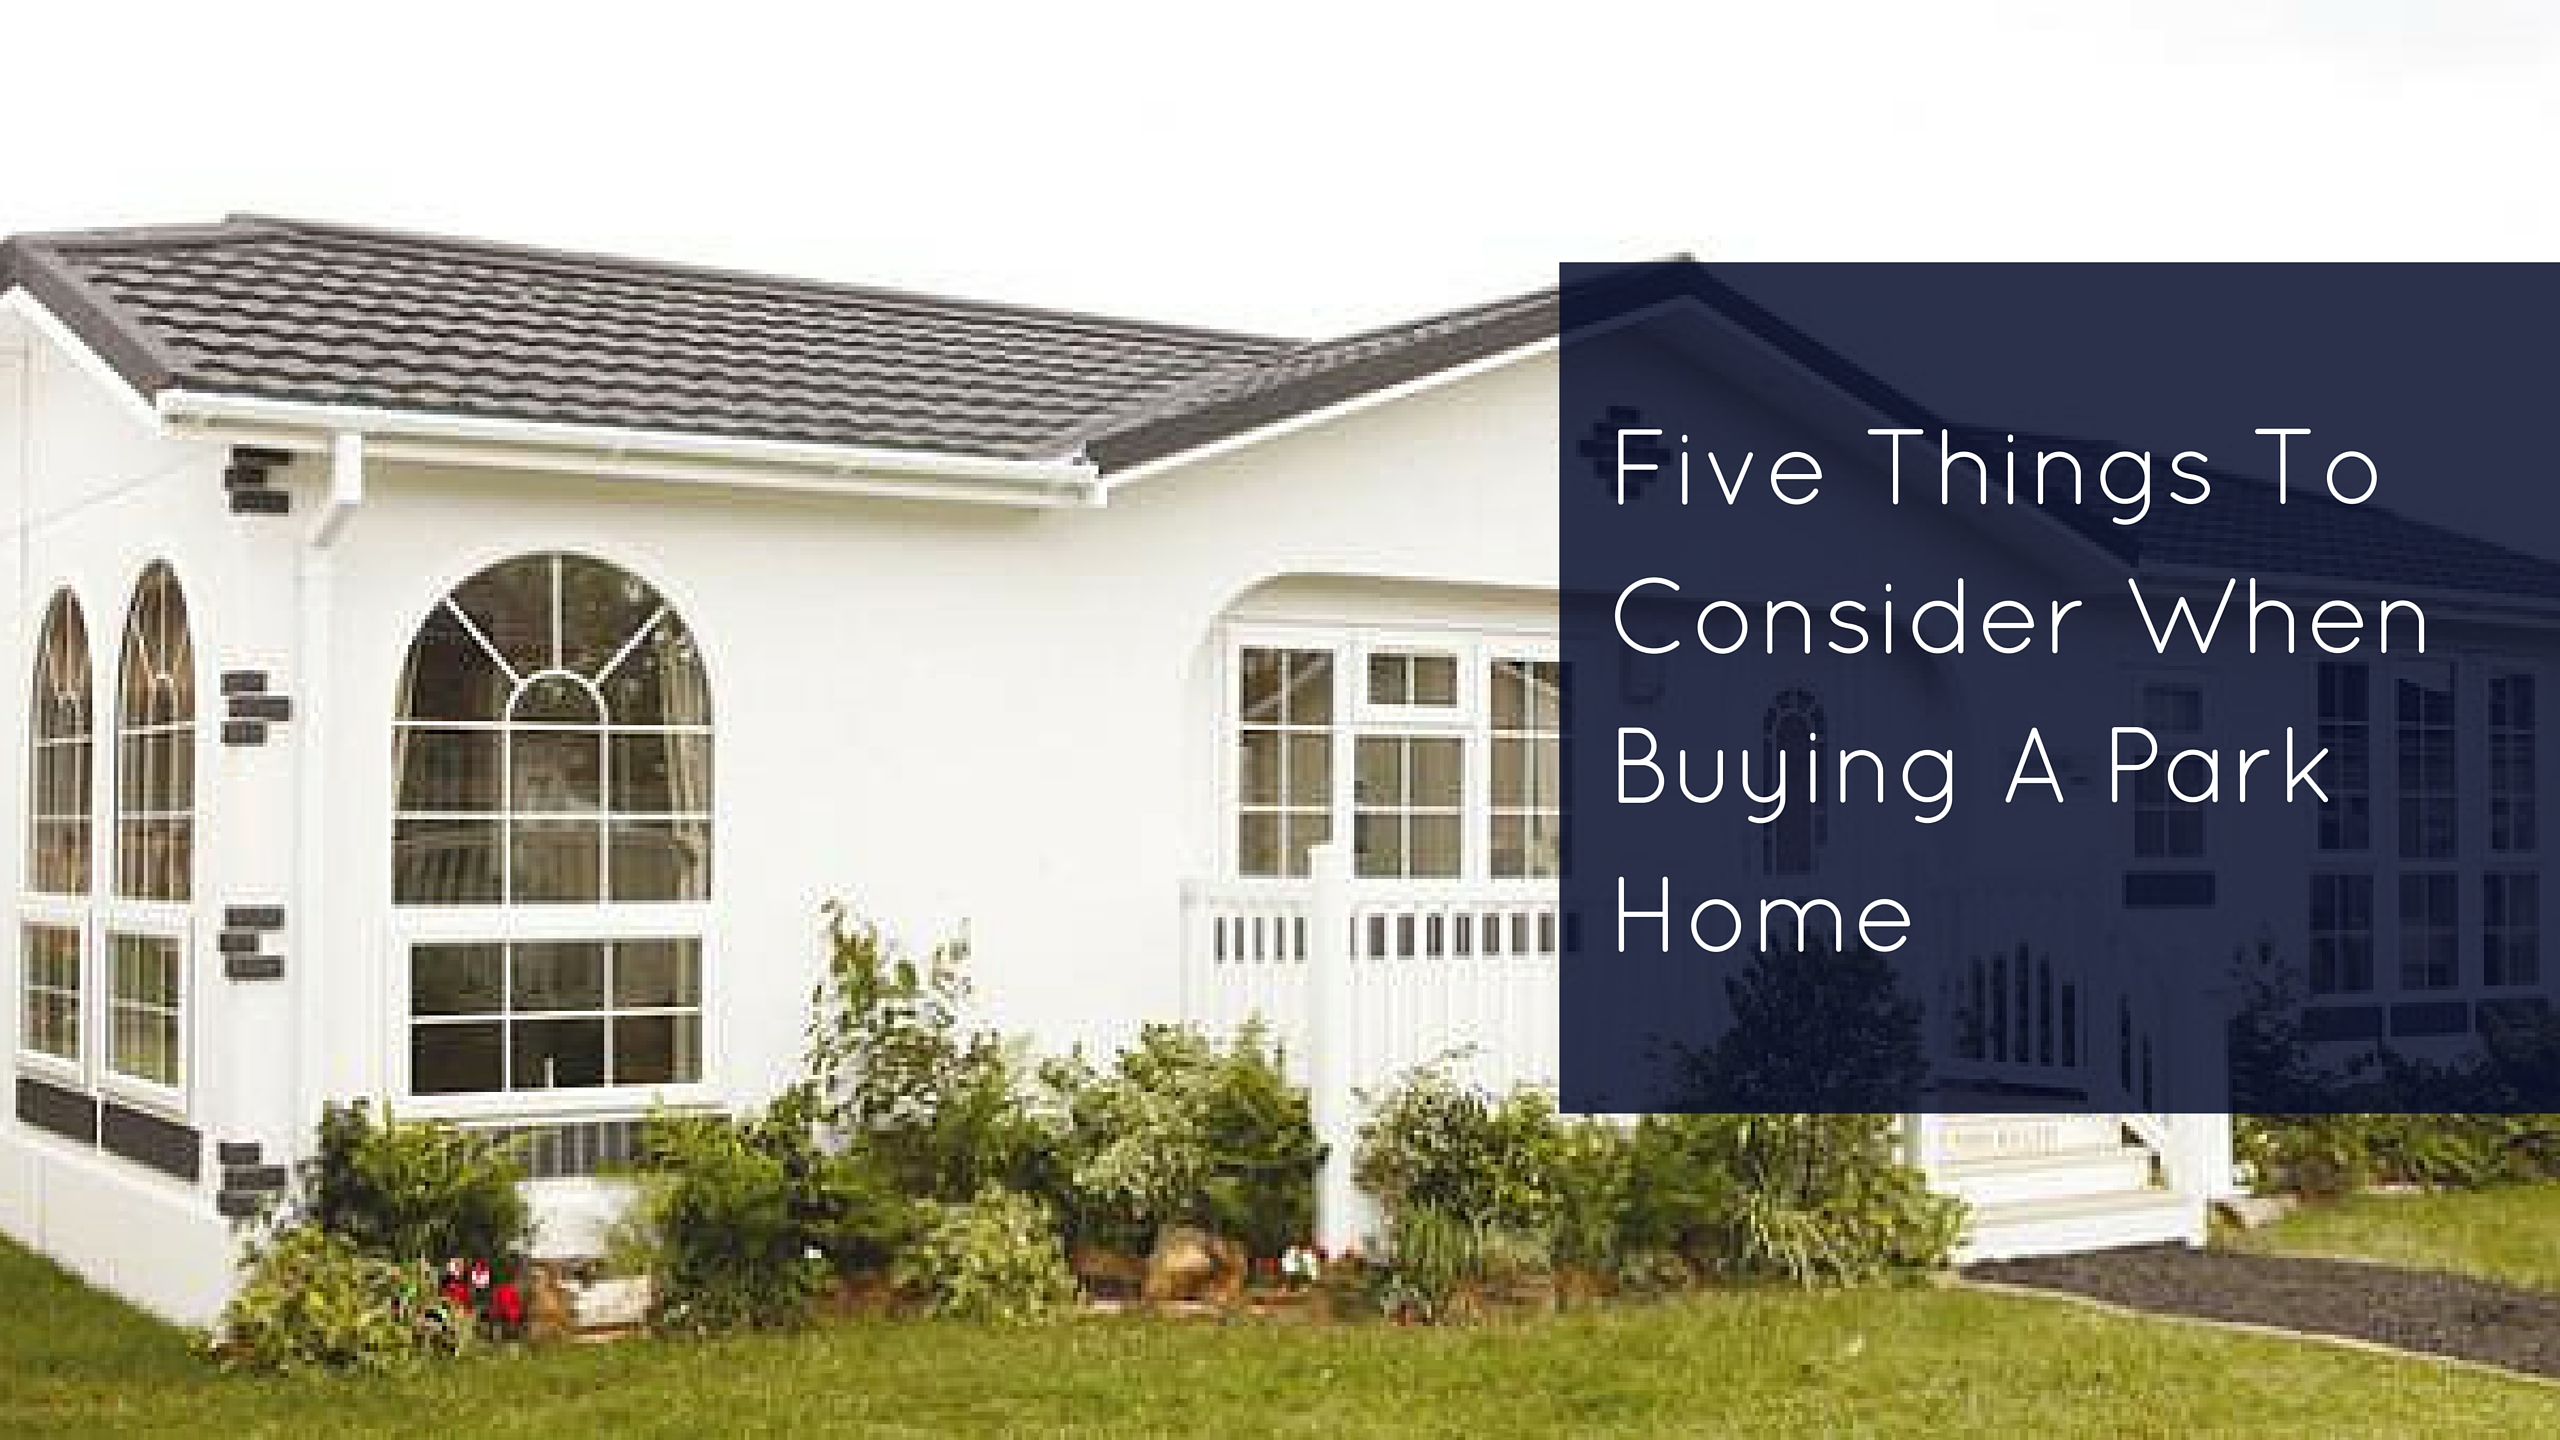 Five Things To Consider When Buying A Park Home